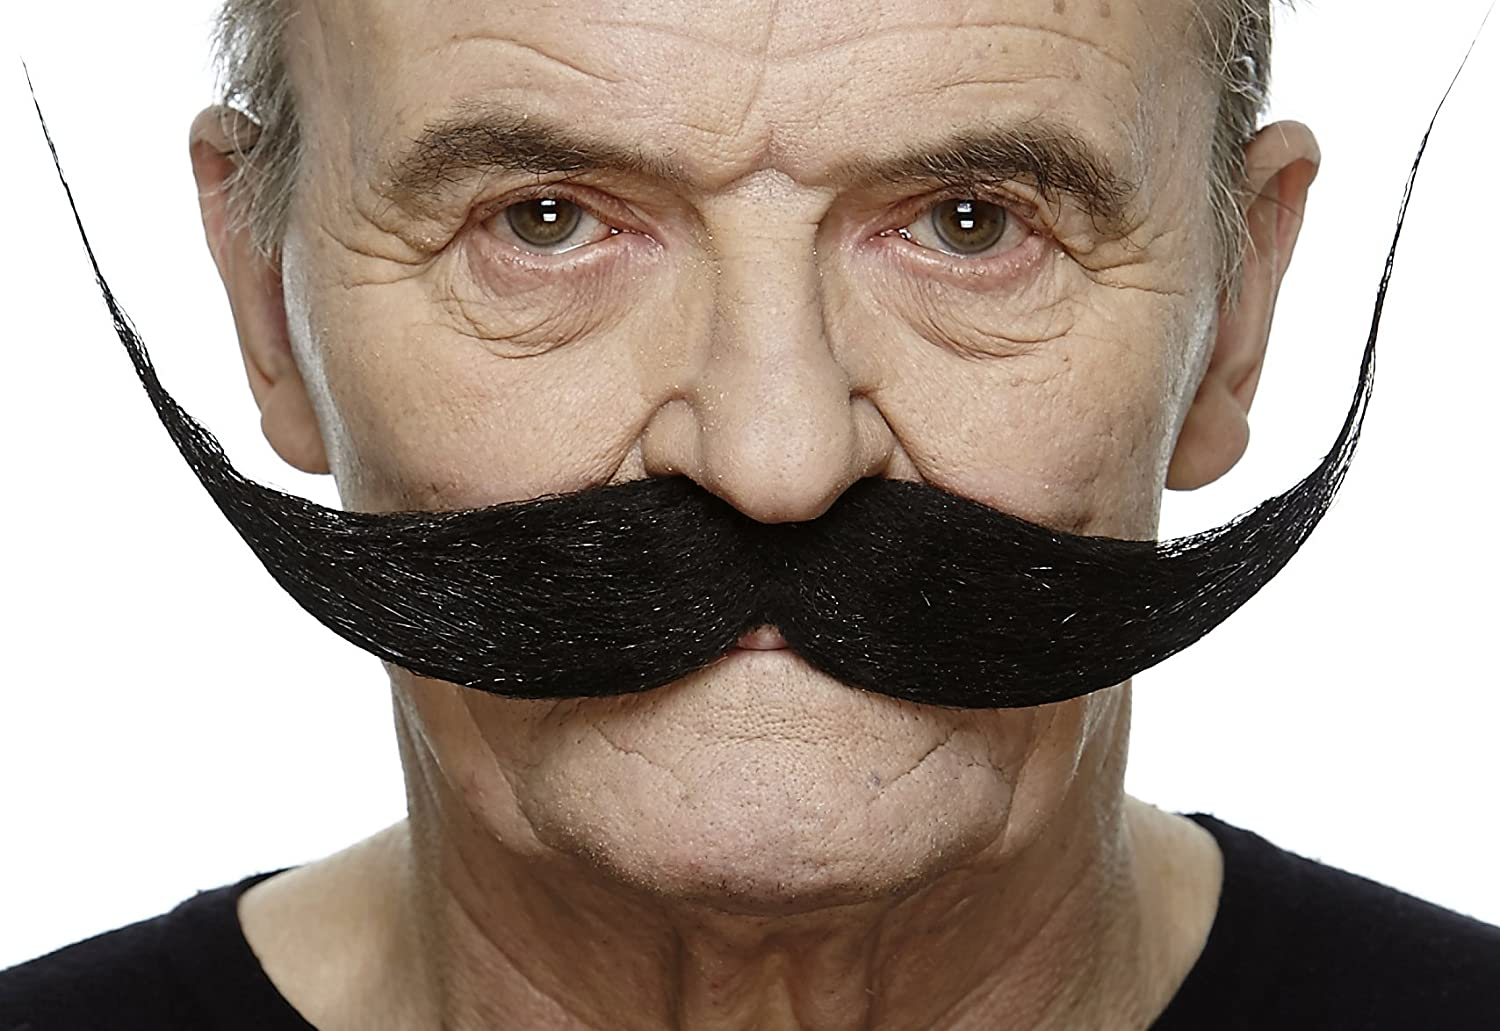 Mustaches Self Adhesive Fake Mustache Costume Accessory for Adults Large Dali Black False Facial Hair Black Color Novelty